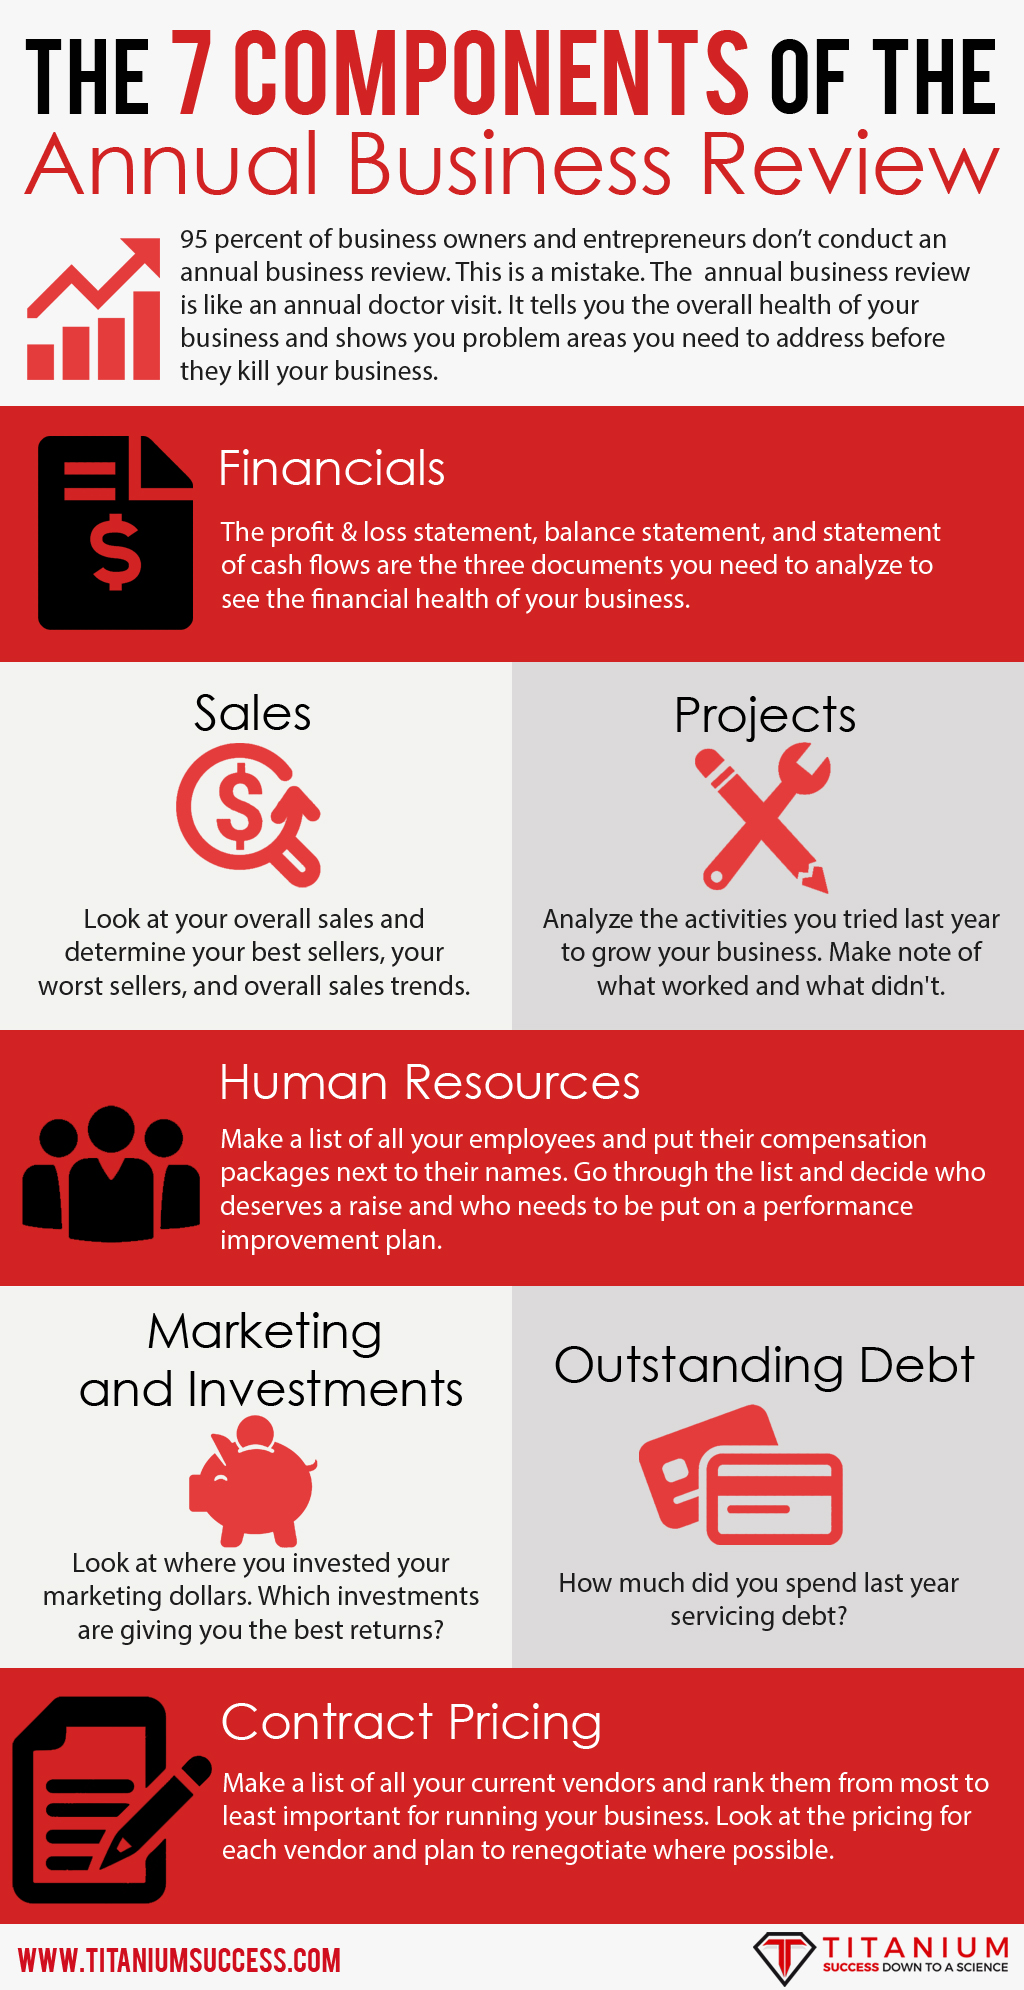 The 7 Components of the Annual Business Review Infographic - TS